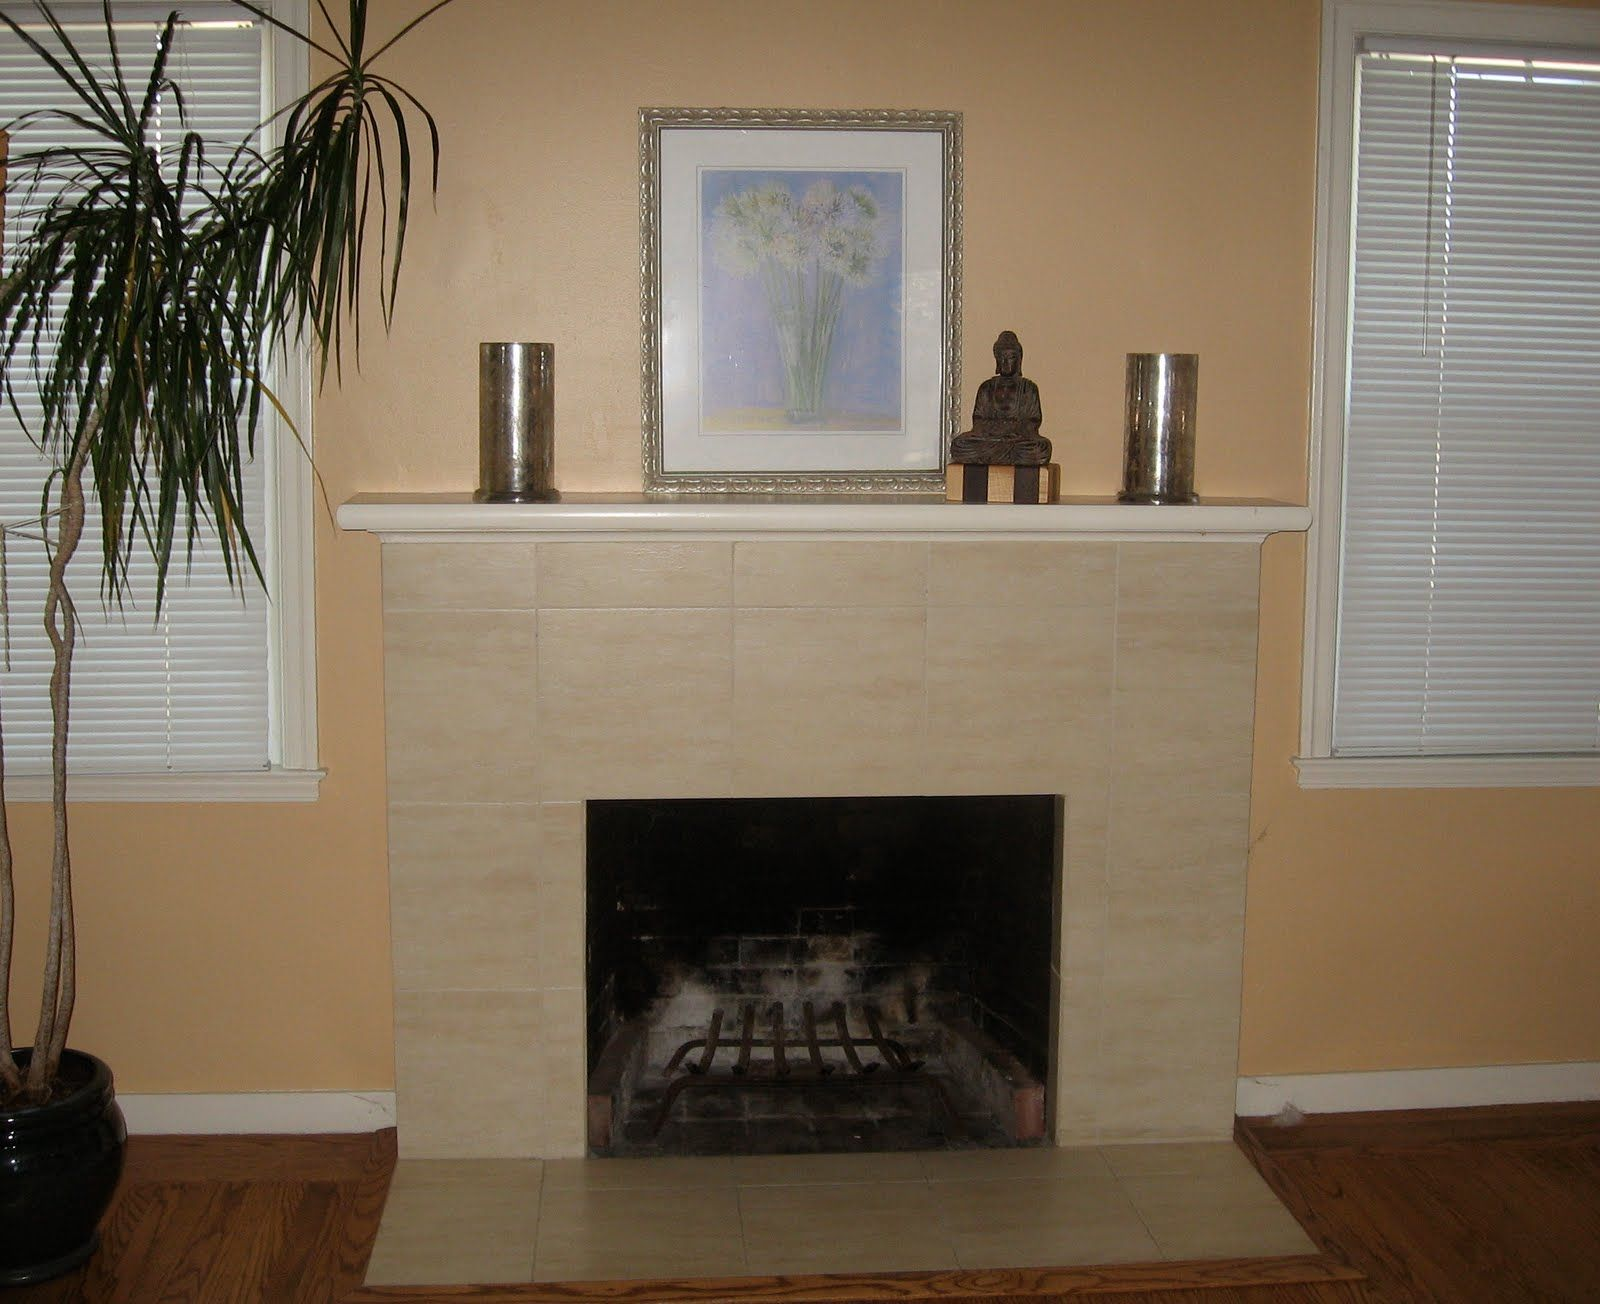 Fireplace Mantels And Surrounds Ideas Glamorous Amazing Gas Fireplace Mantel Ideas To Warm Your Winter Time Decorating Inspiration